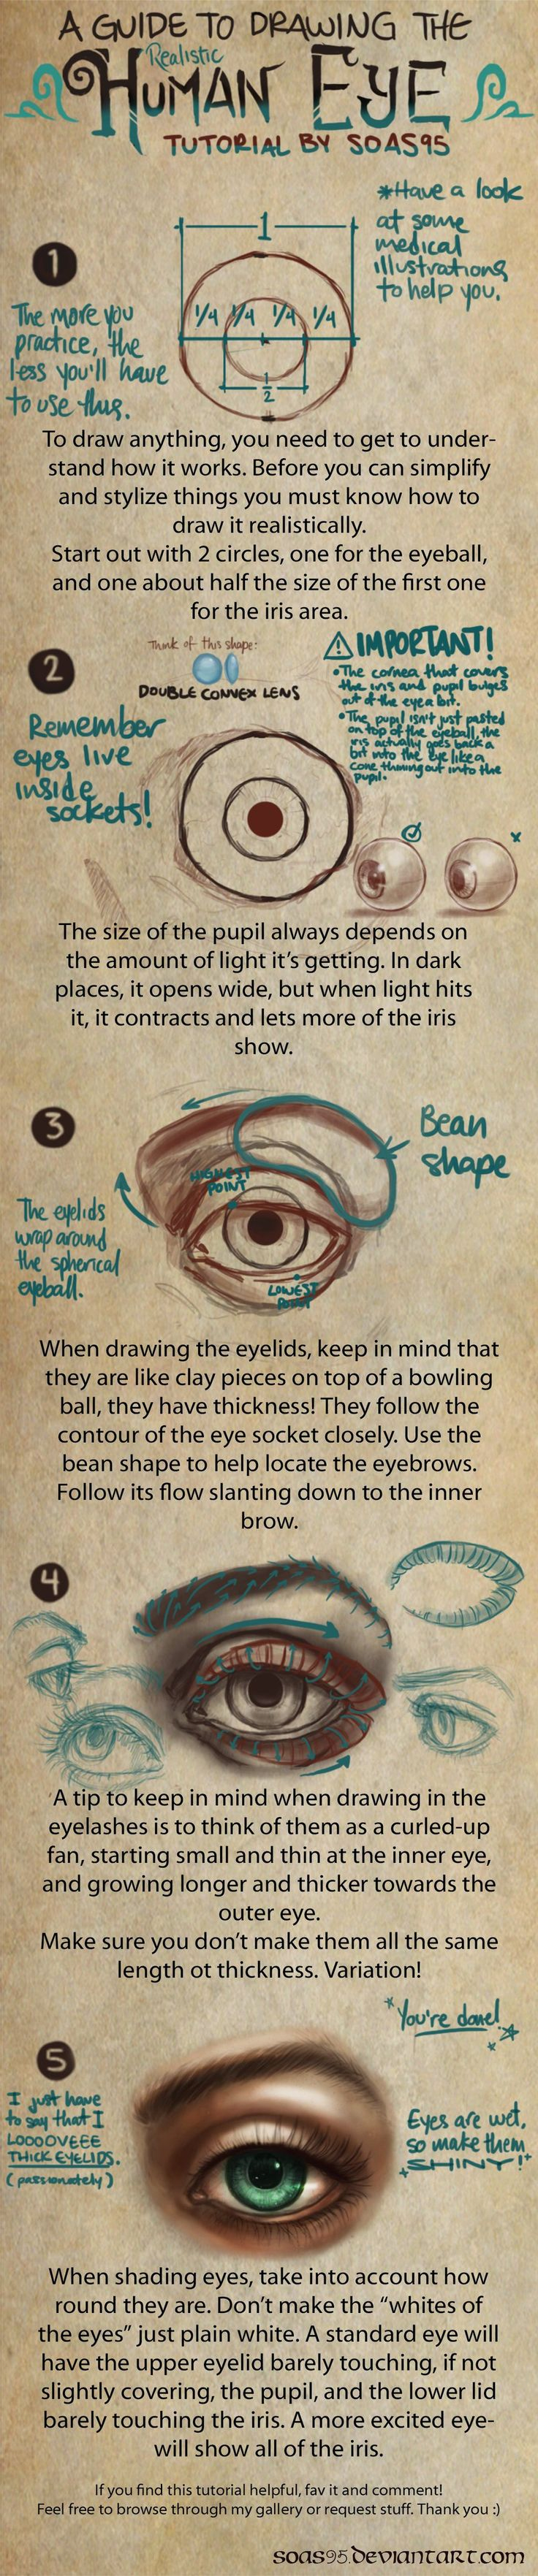 Best 20+ How To Draw Eyes Ideas On Pinterest  Eye Drawing Tutorials,  Drawing Techniques And Eye Drawings